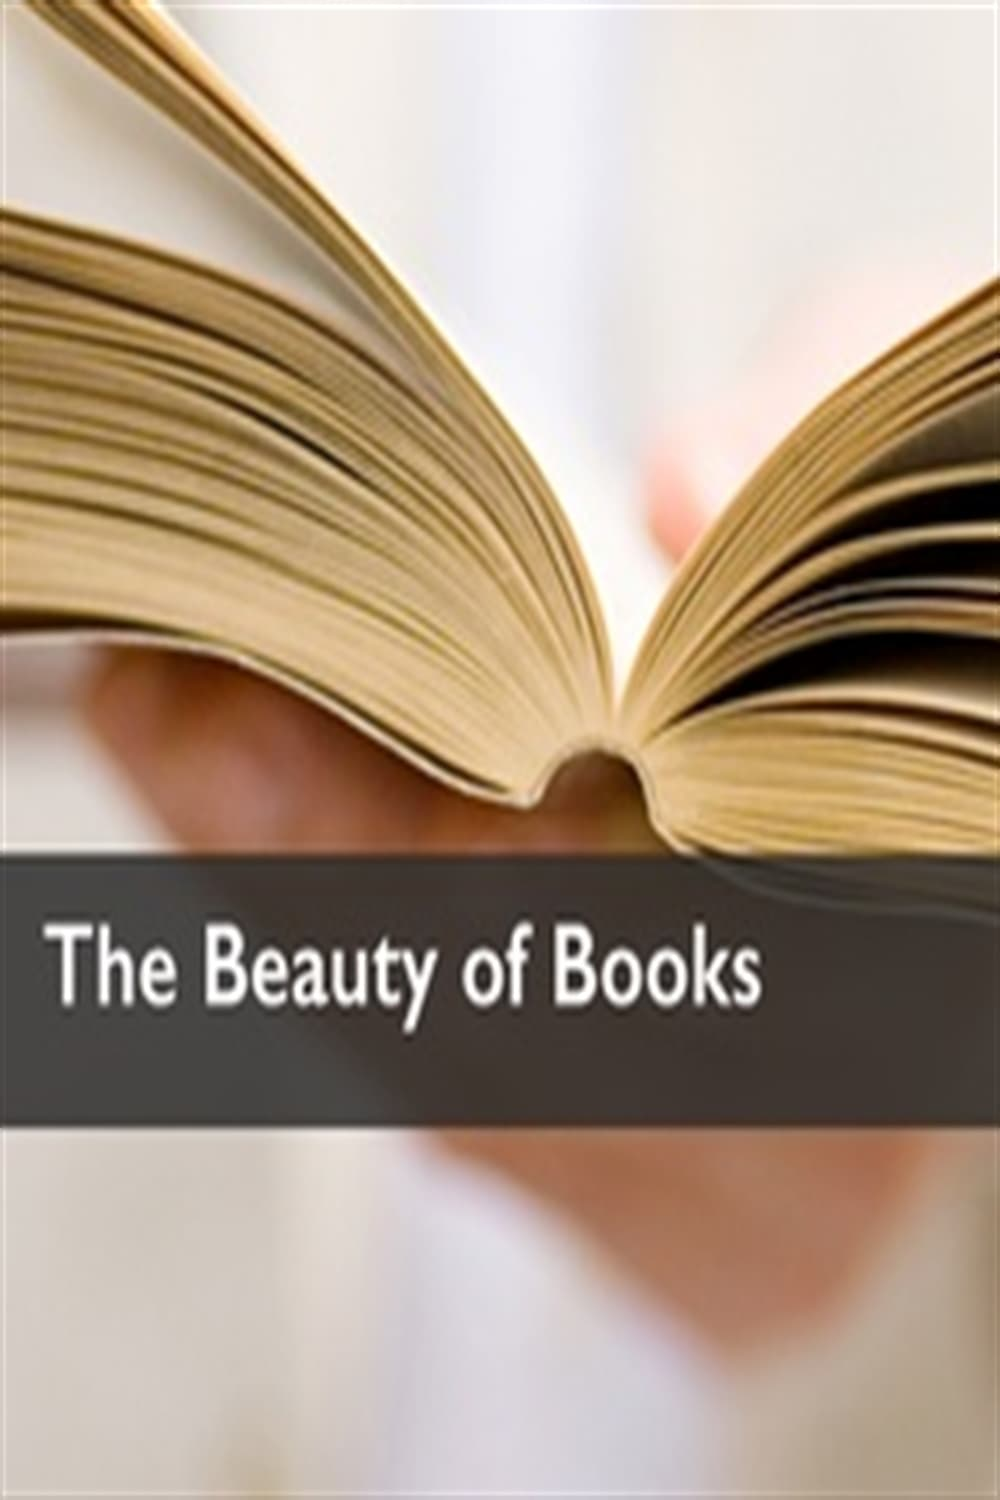 The Beauty of Books